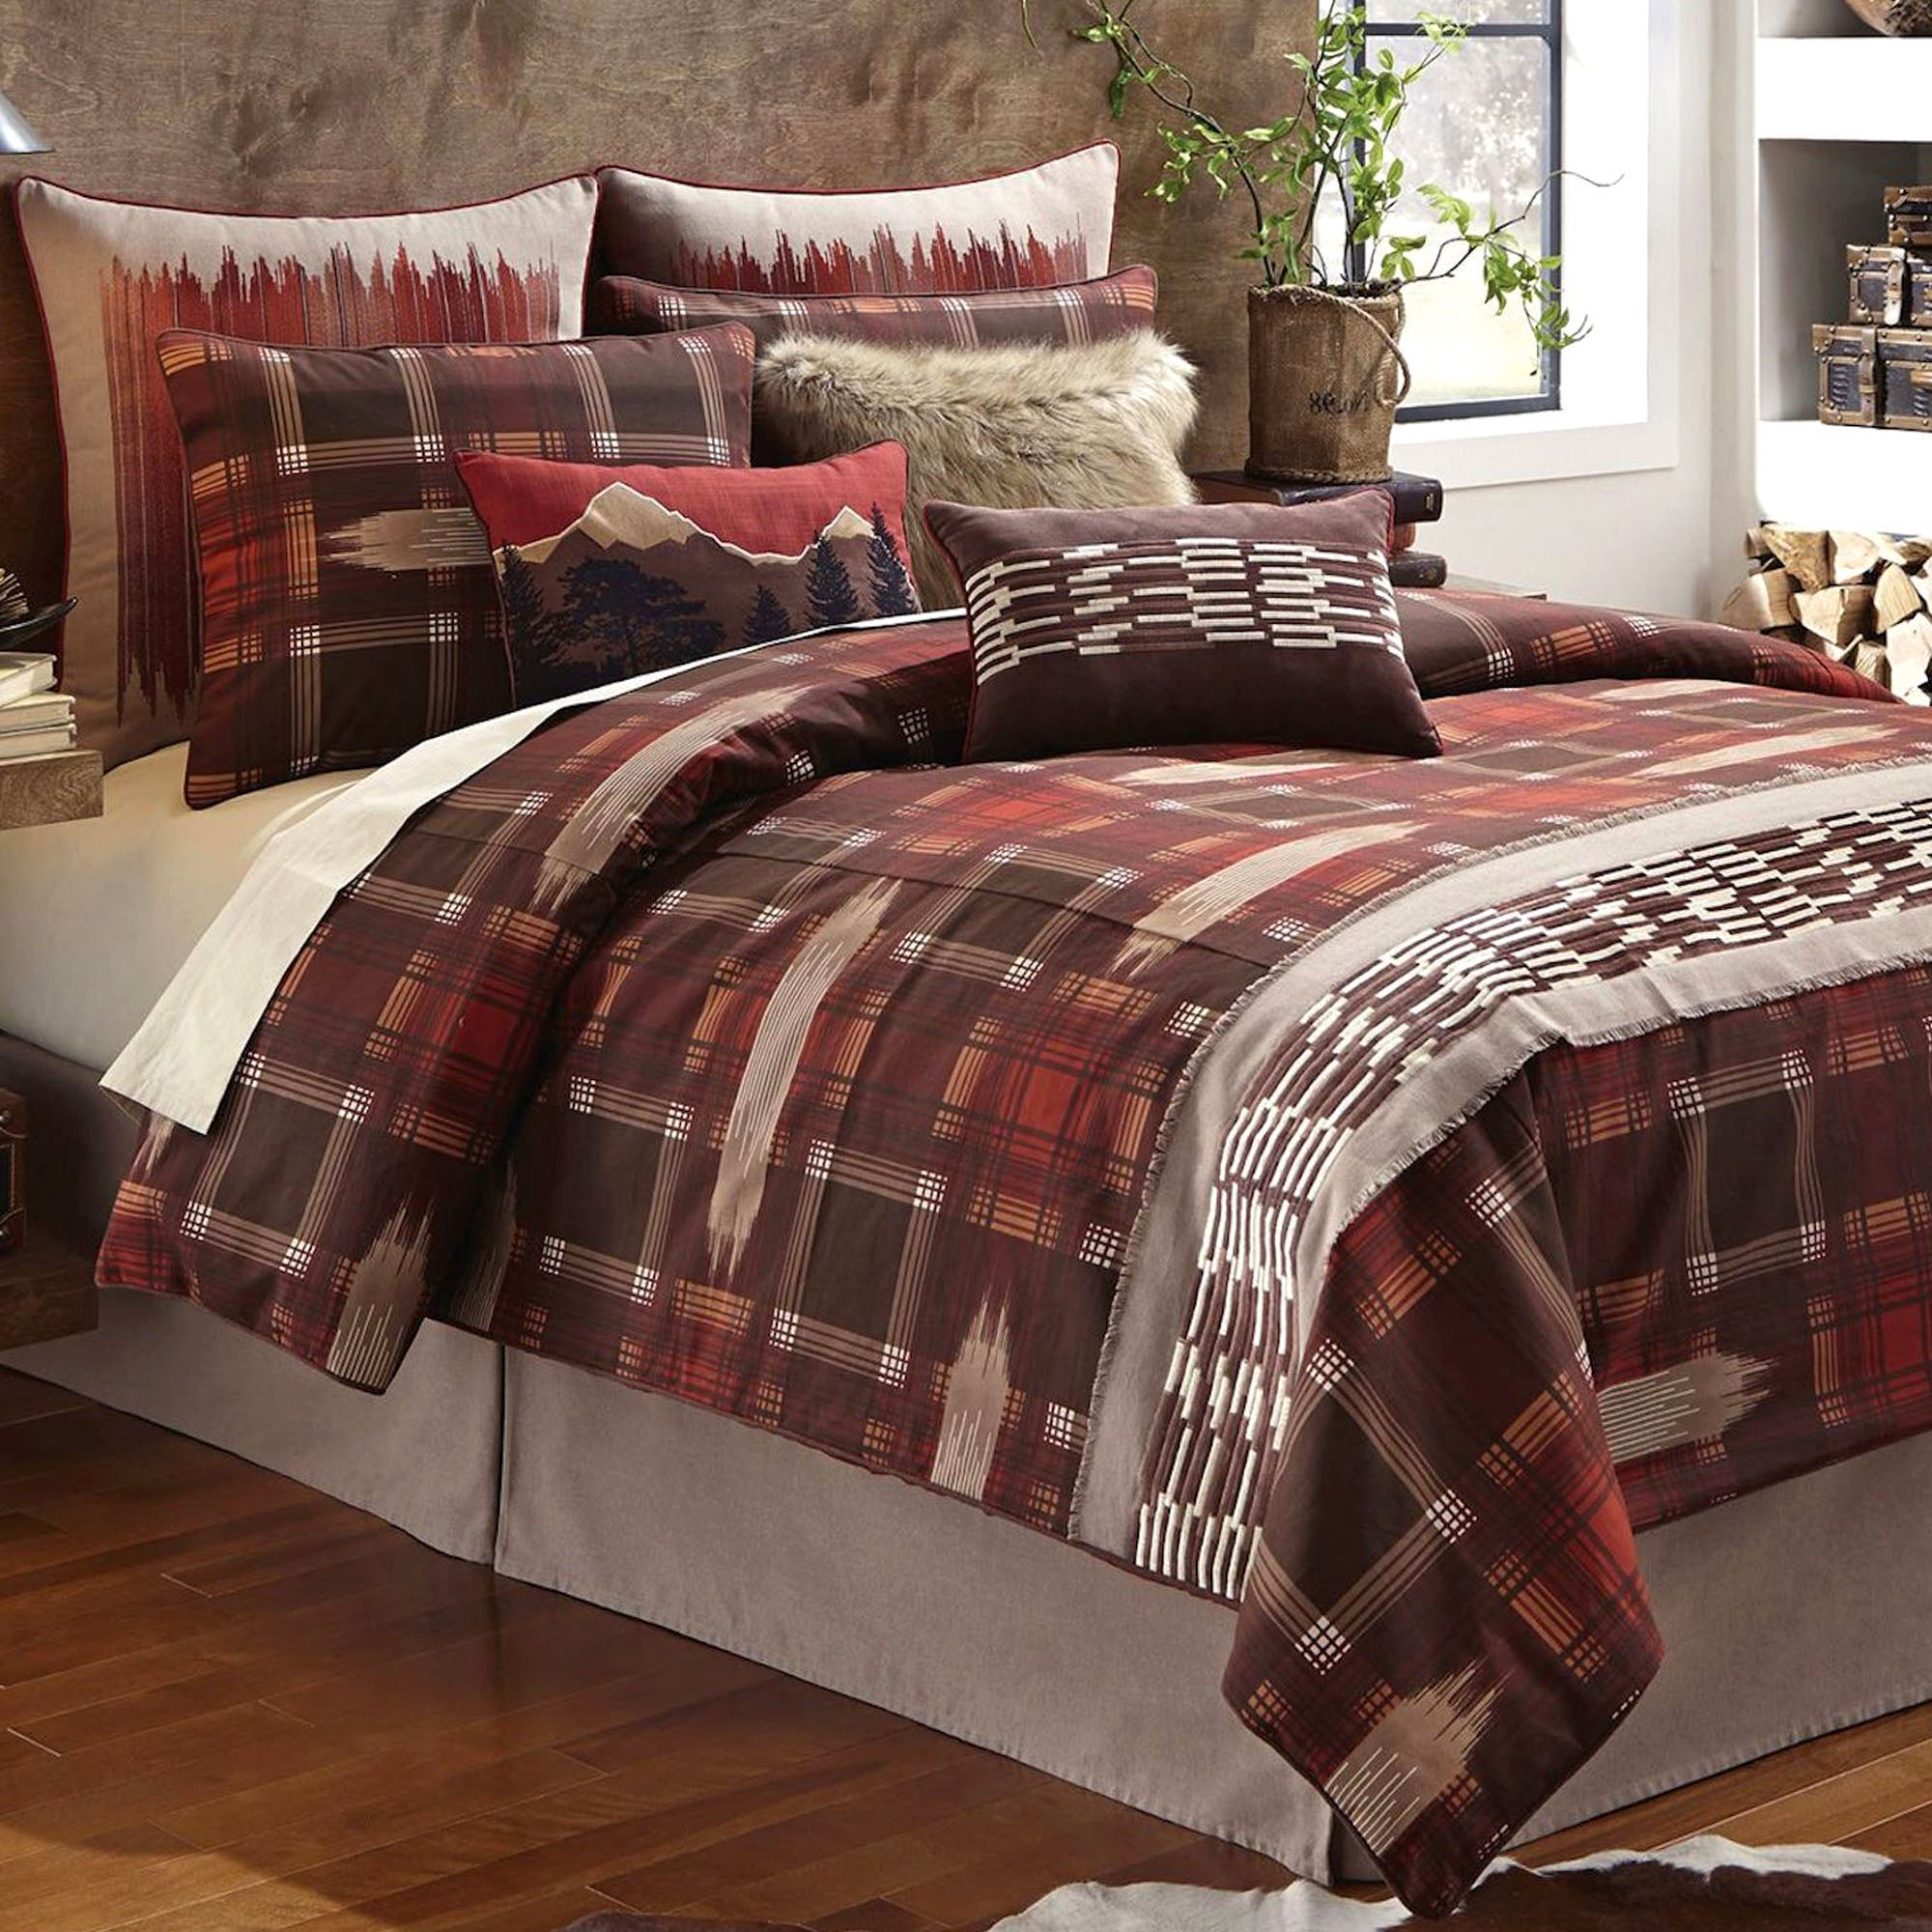 bedding duvets comforters blog wooded appalachian rustic river comforter tag groupshot